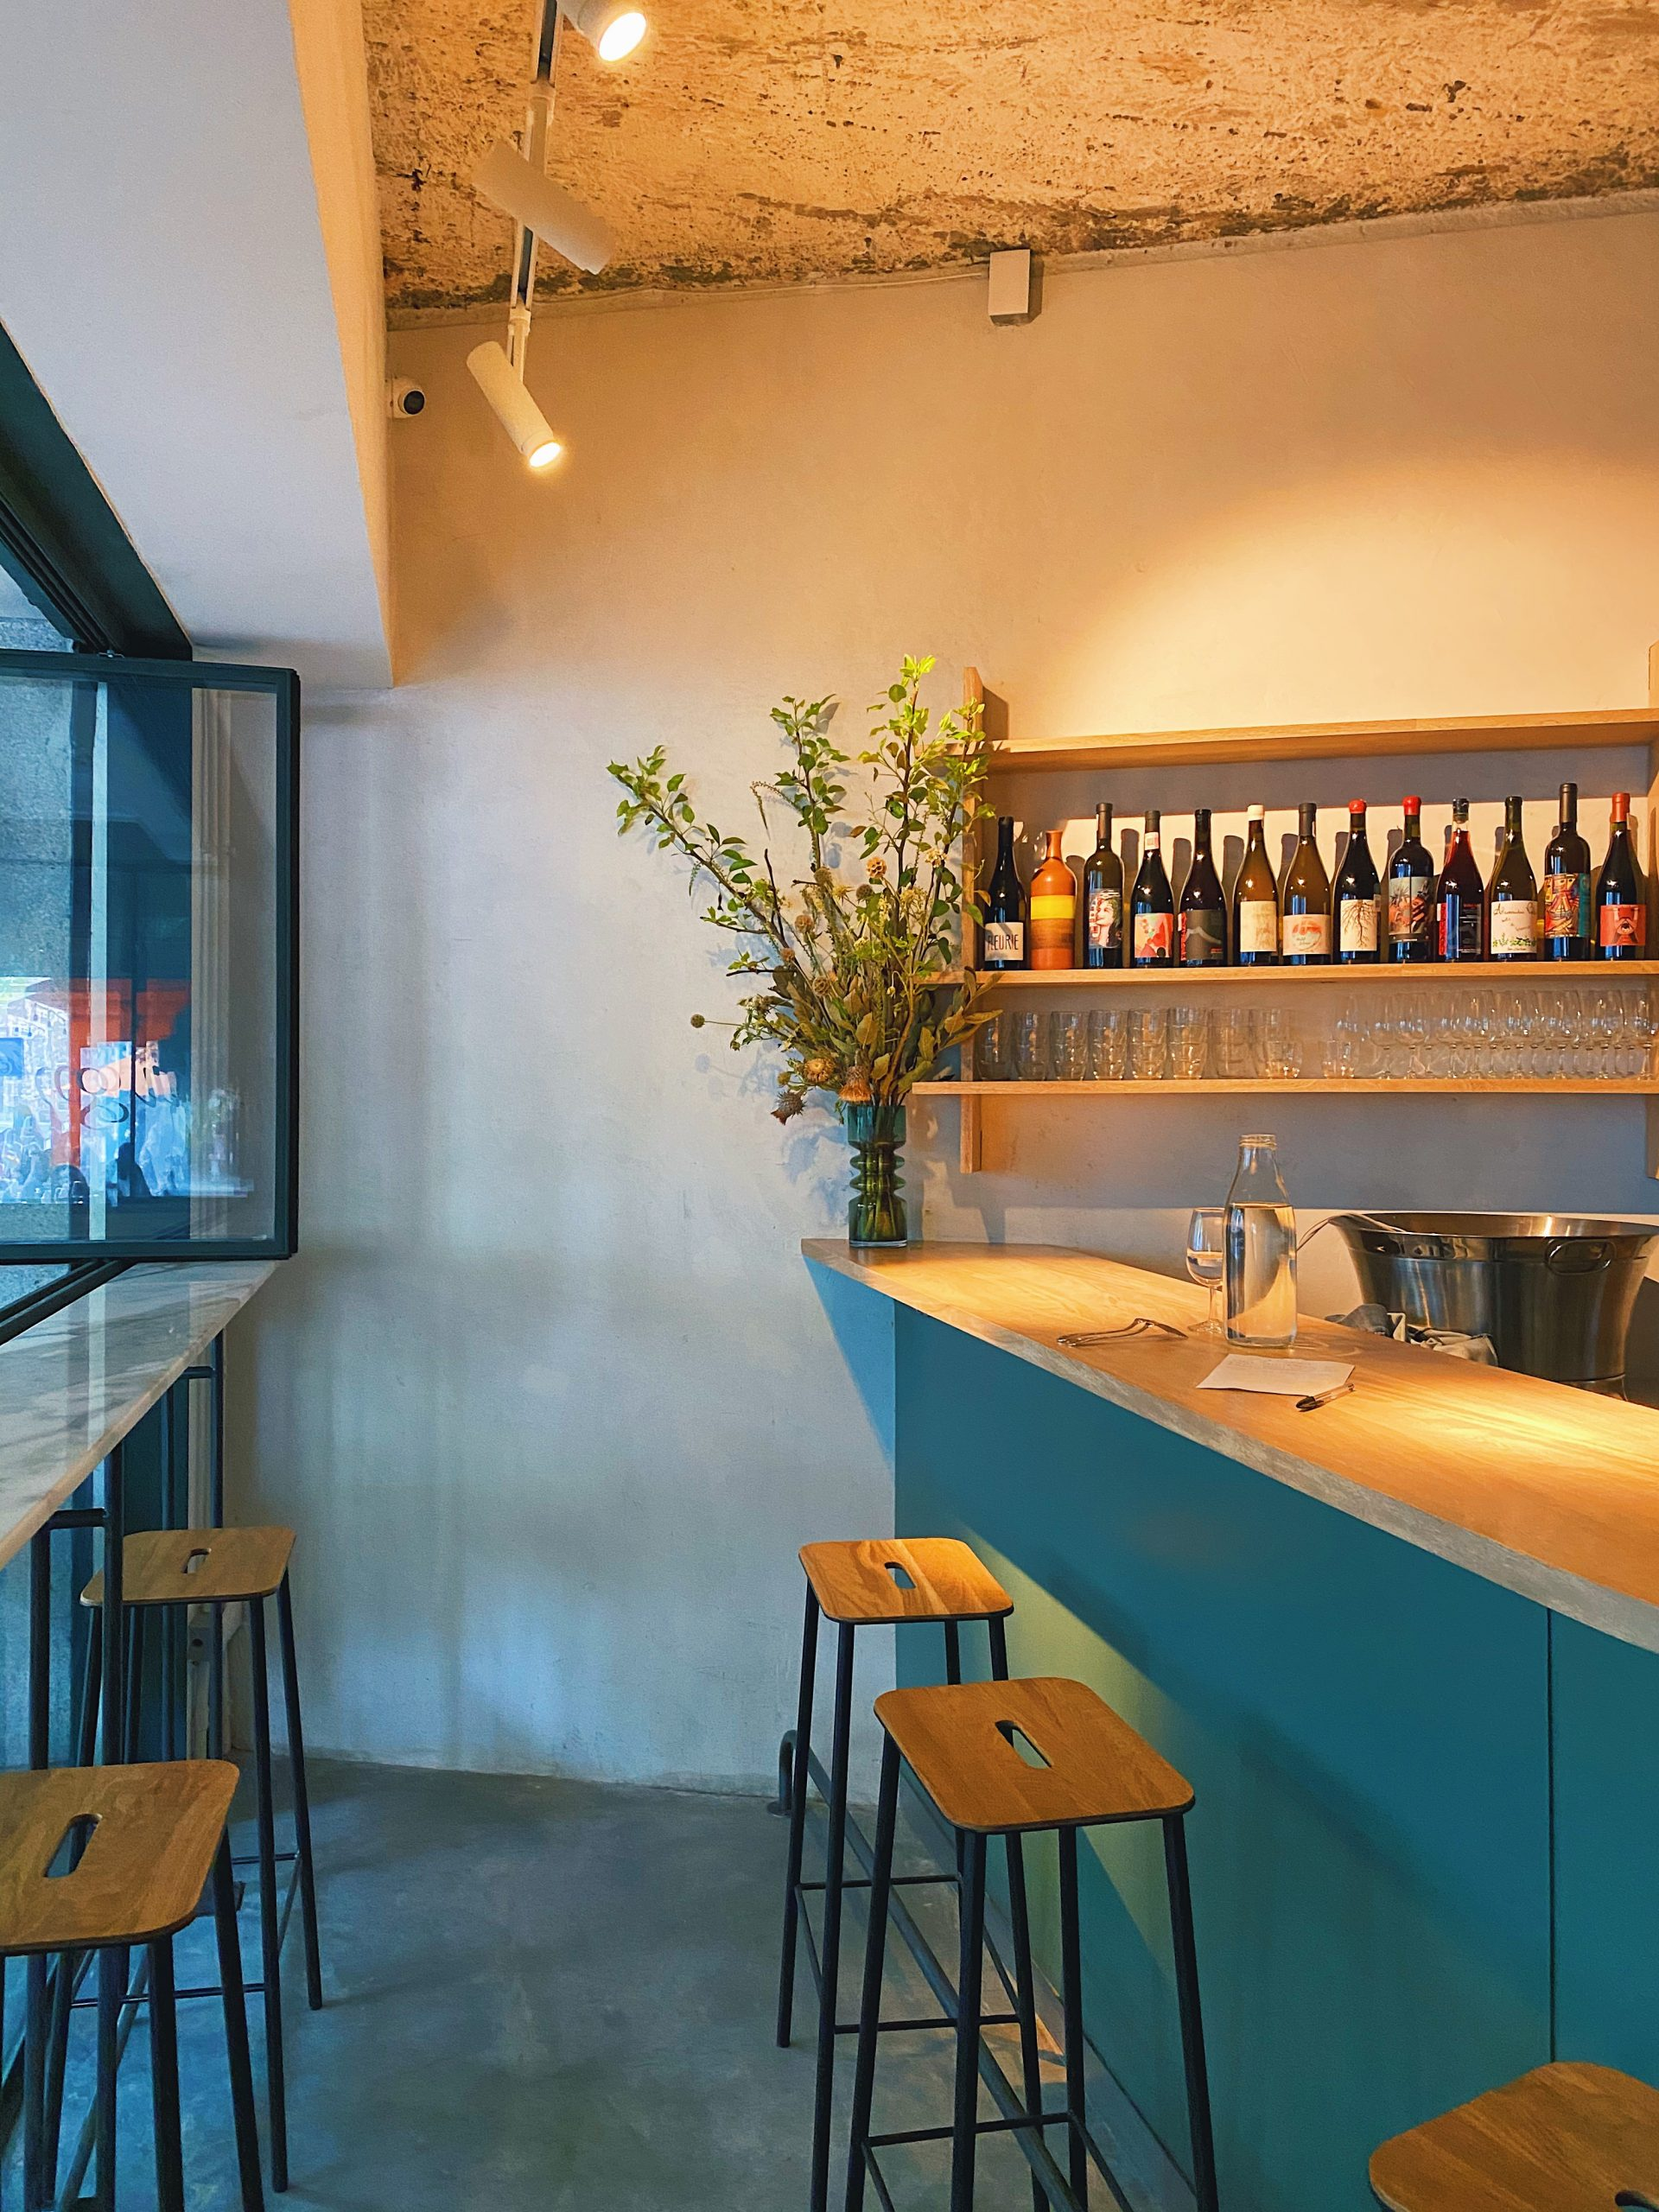 wu-haus-mexico-city-guide-food-cafe